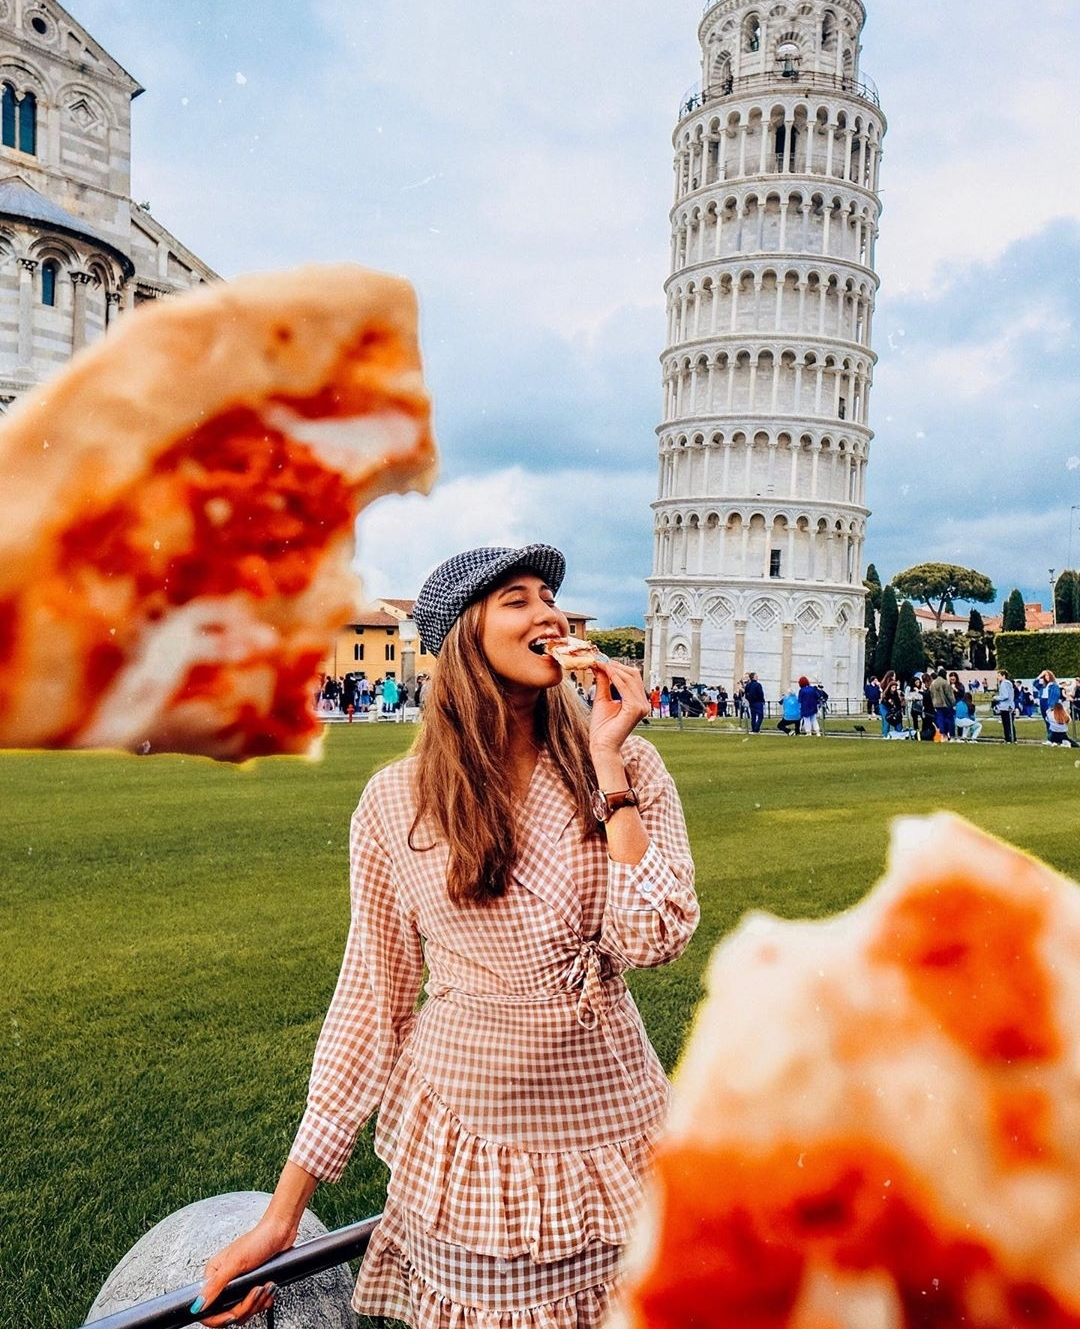 Europe Virtual Tour: Eating pizza in front of the Leaning Tower of Pisa in Italy